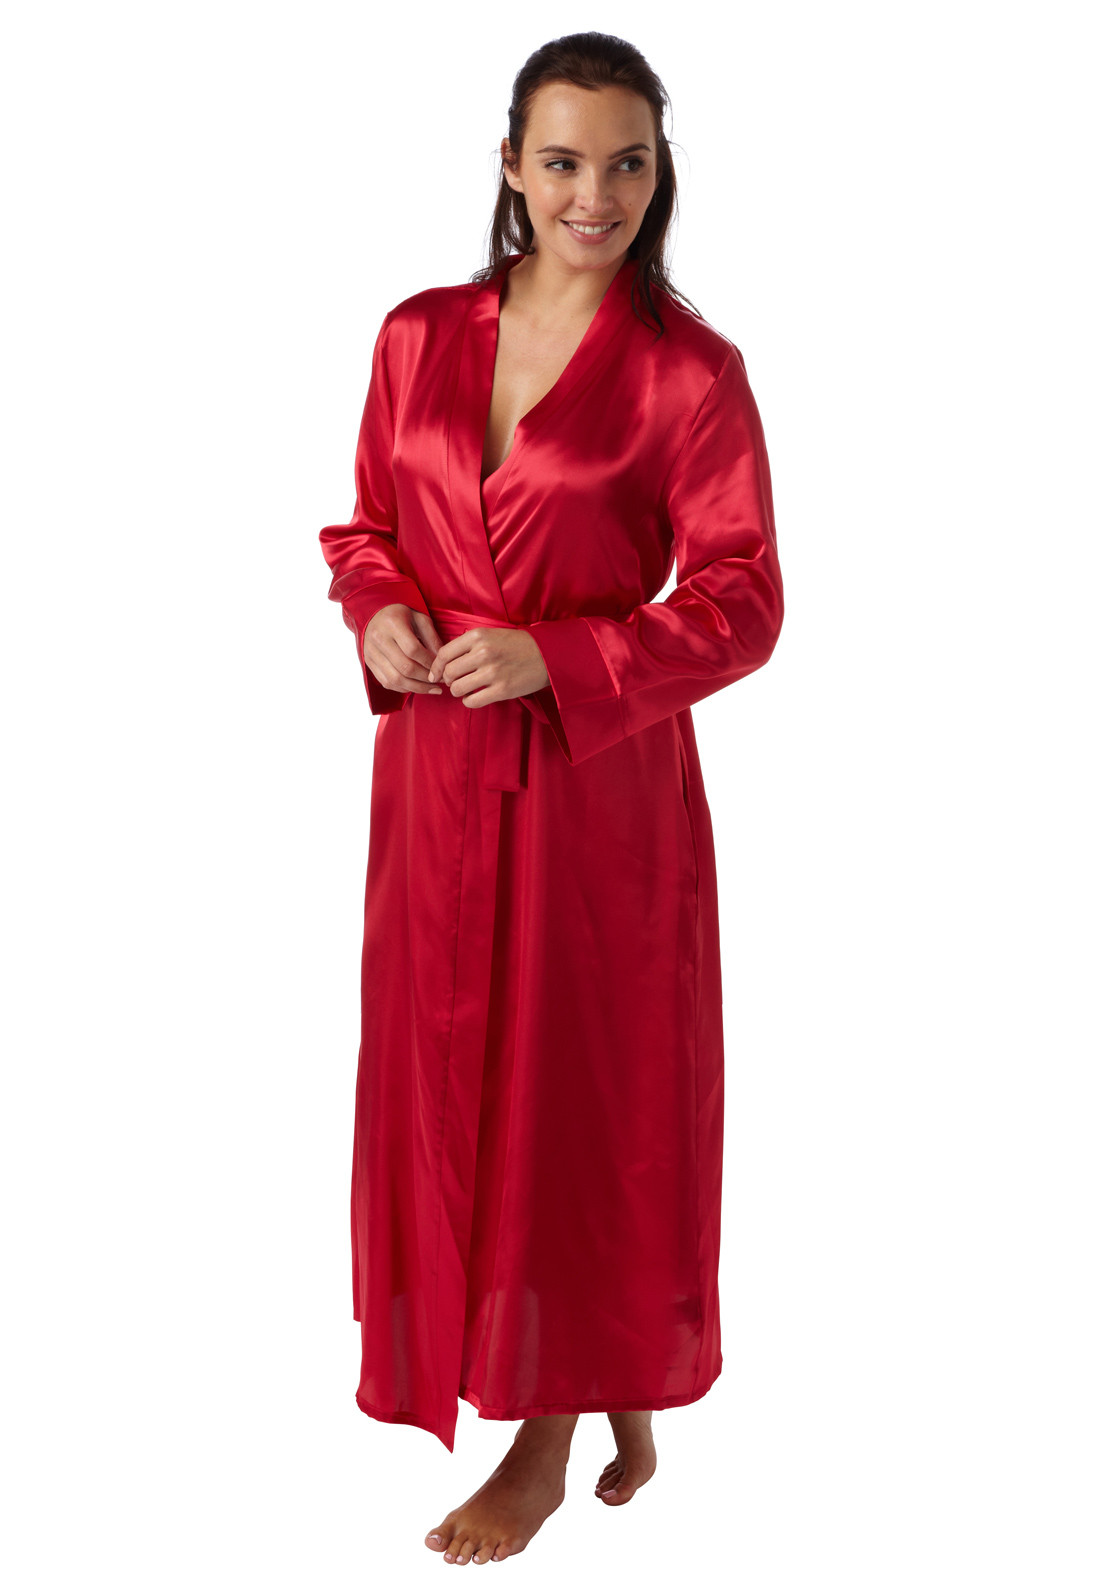 Indigo Sky Lace Trim Satin Dressing Gown, Red